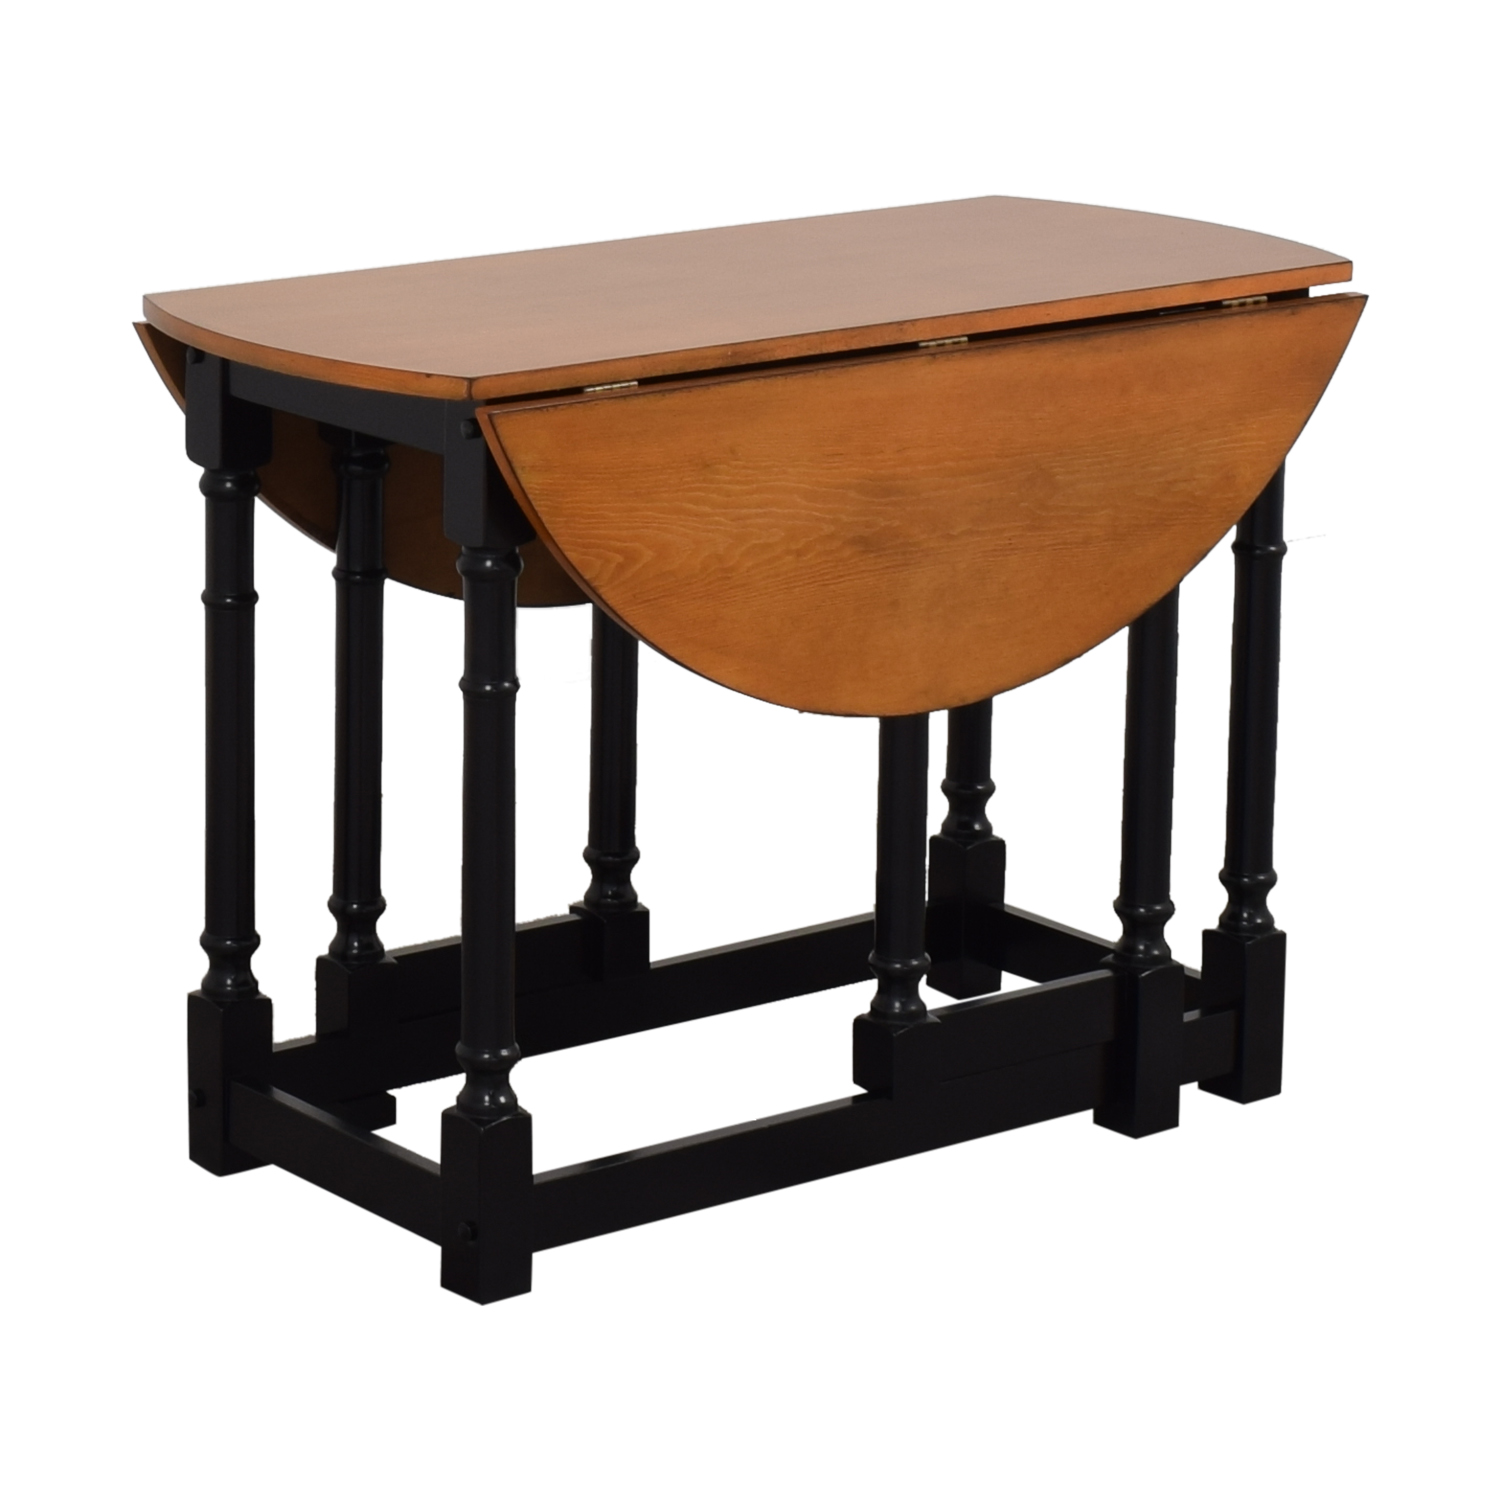 Accent Trend Solid Wood Gateleg Table Accent Trend